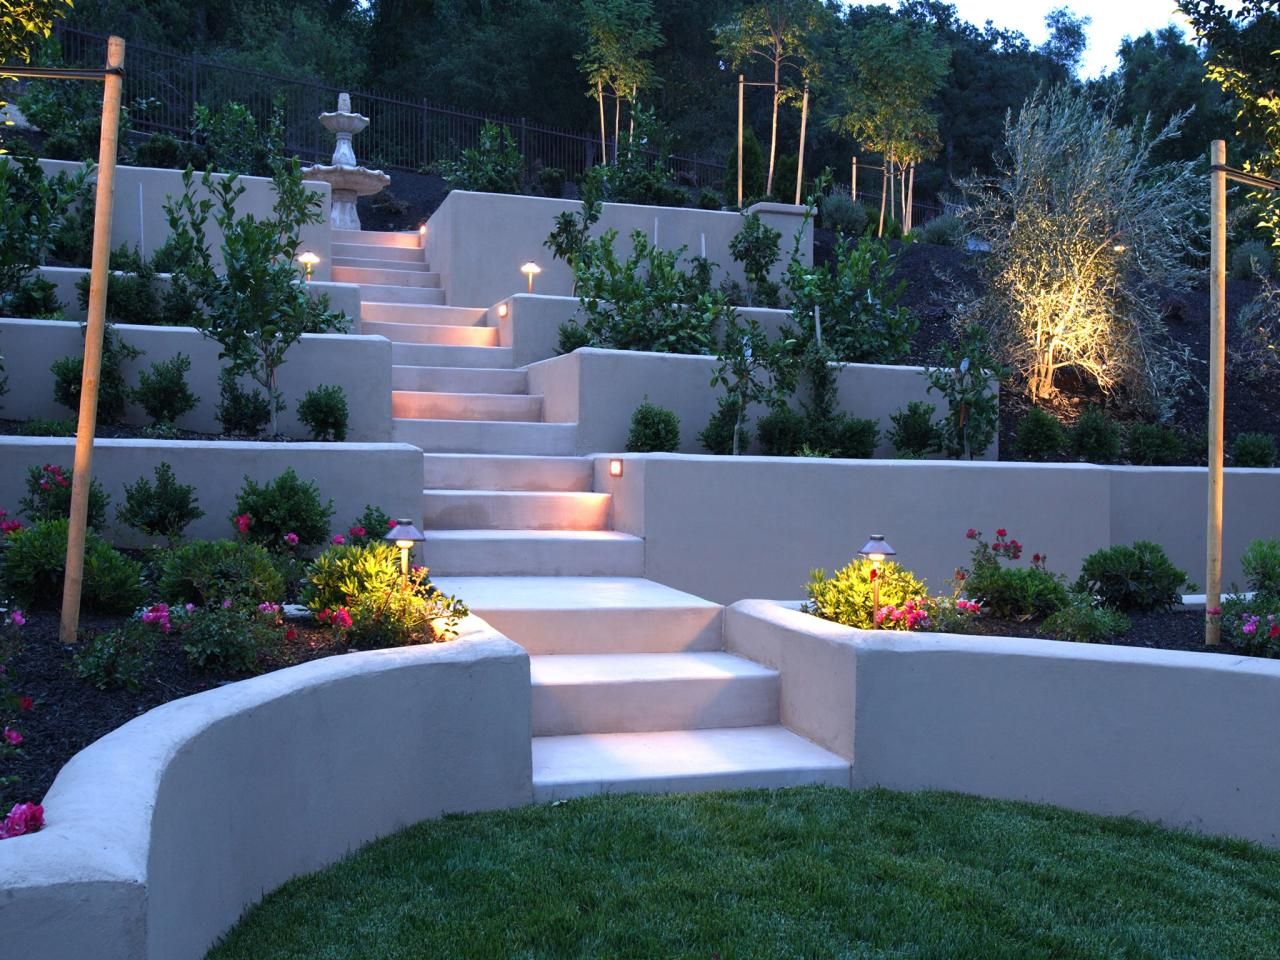 Hardscaping-Mesquite TX Landscape Designs & Outdoor Living Areas-We offer Landscape Design, Outdoor Patios & Pergolas, Outdoor Living Spaces, Stonescapes, Residential & Commercial Landscaping, Irrigation Installation & Repairs, Drainage Systems, Landscape Lighting, Outdoor Living Spaces, Tree Service, Lawn Service, and more.